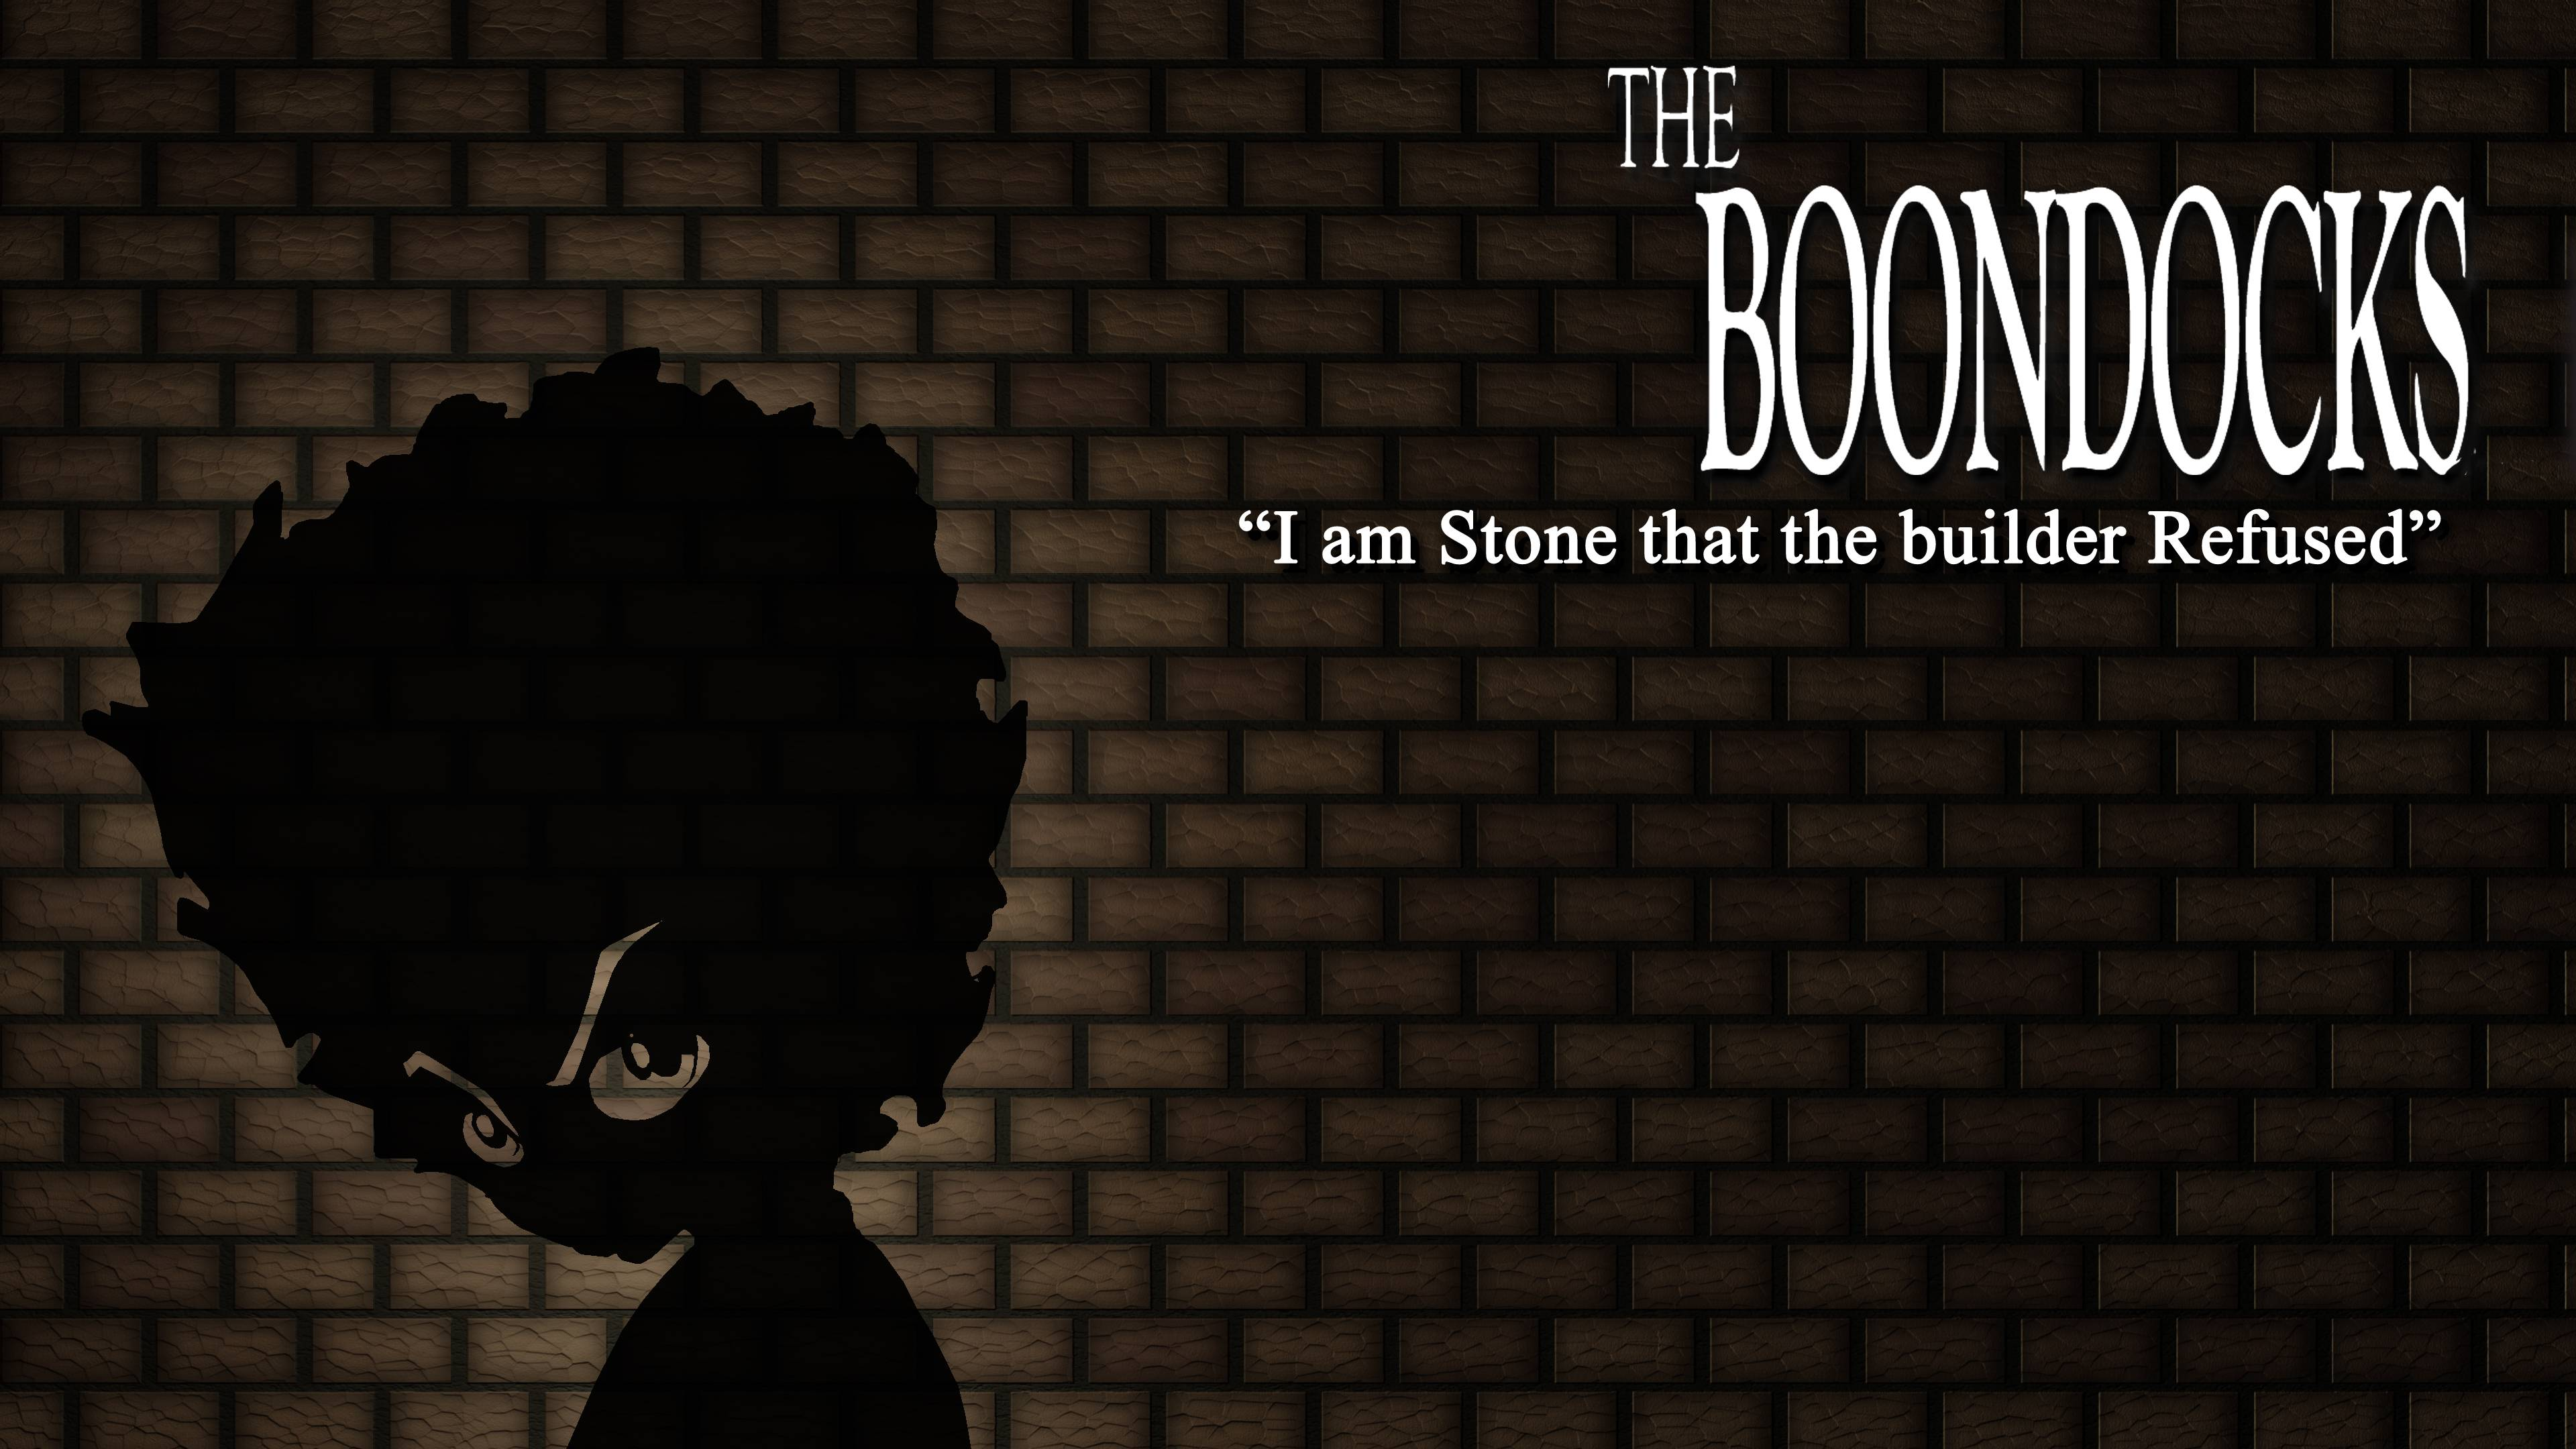 The Boondocks 4k Ultra HD Wallpapers and Backgrounds Image